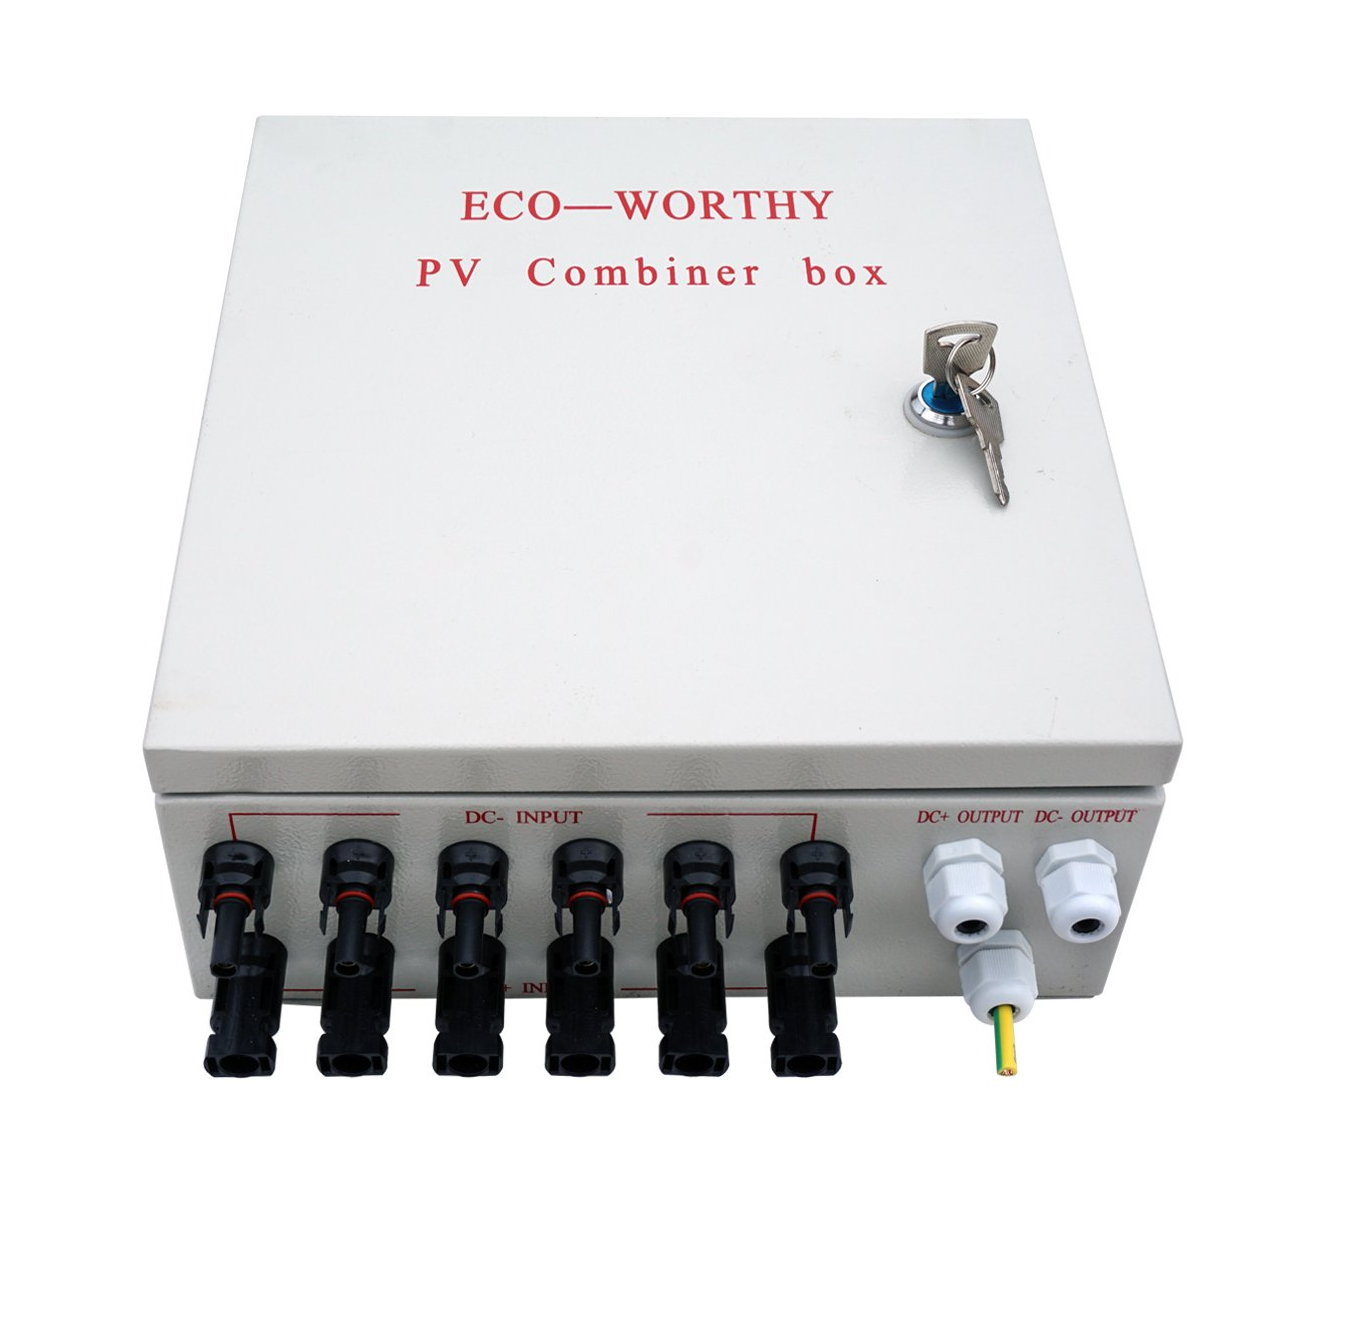 The 1000 Watt Solar Panel PV combiner box.